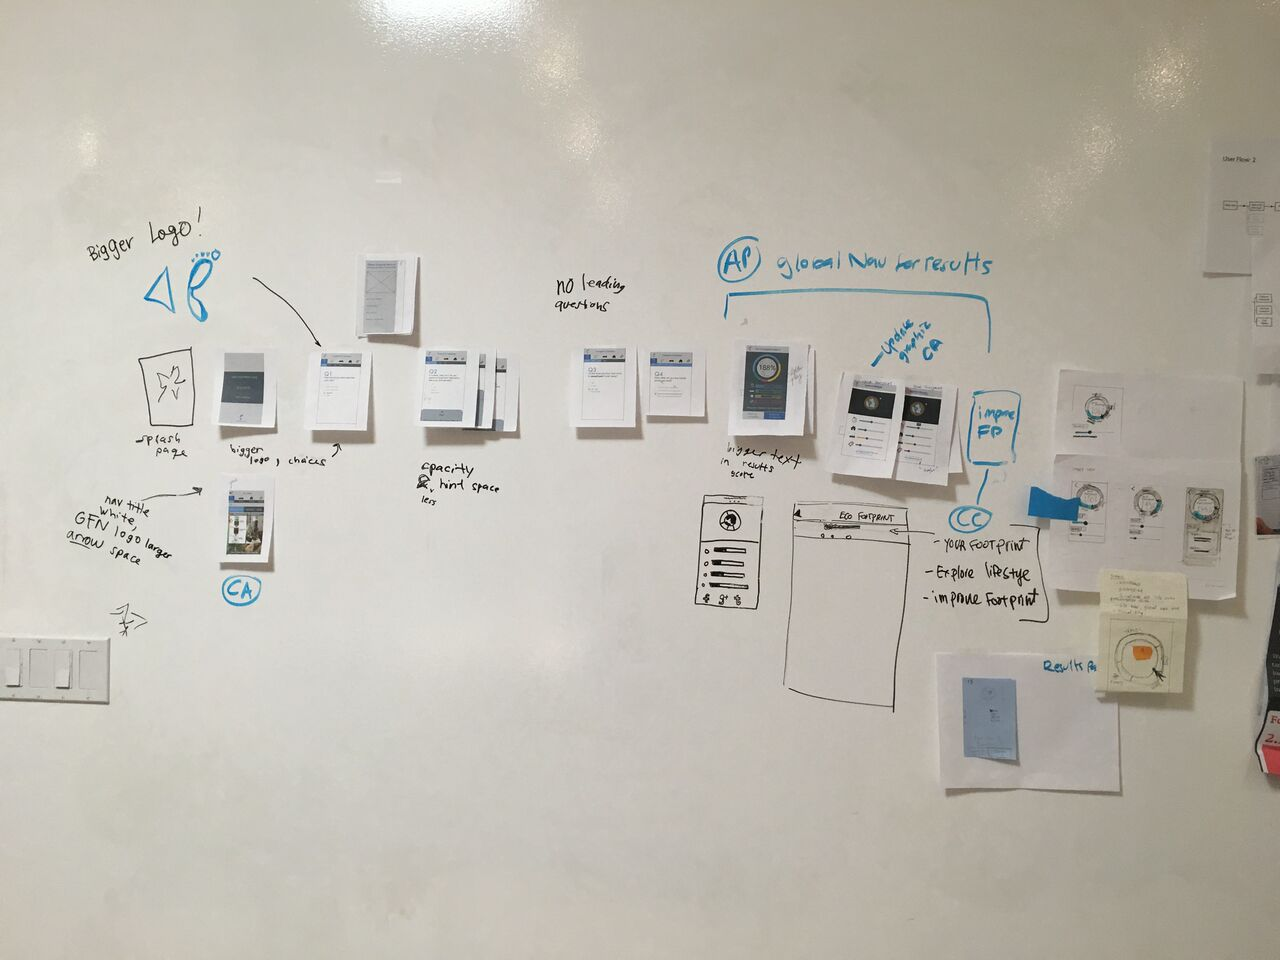 2nd Iteration, Paper Prototype User Flow